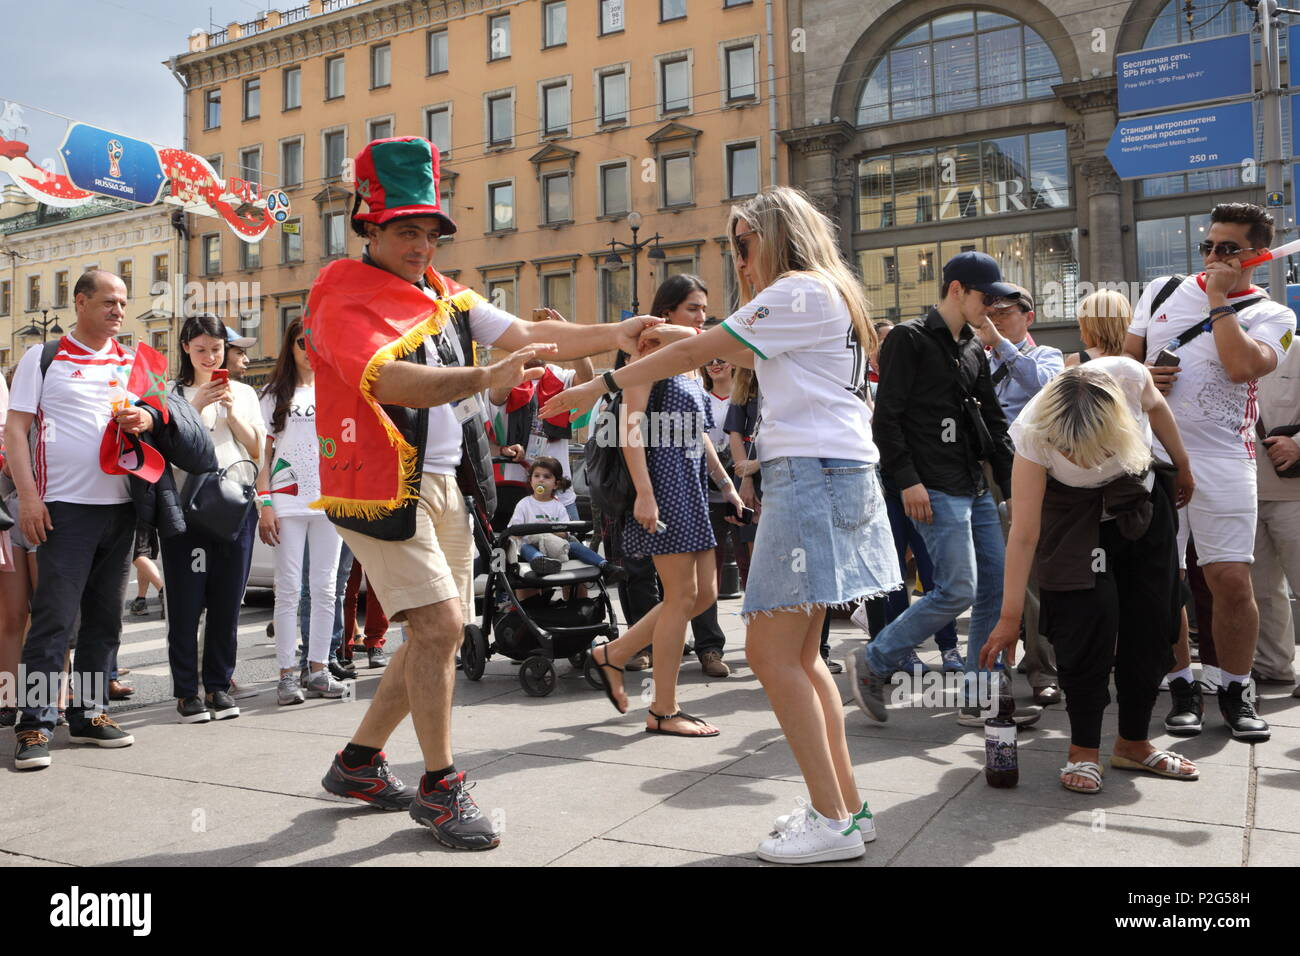 St. Petersburg, Russia, 15th June, 2018. Moroccan football fans in Saint-Petersburg on the day of first match of FIFA World Cup 2018 in the city. It is the match Morocco vs Iran Credit: StockphotoVideo/Alamy Live News - Stock Image